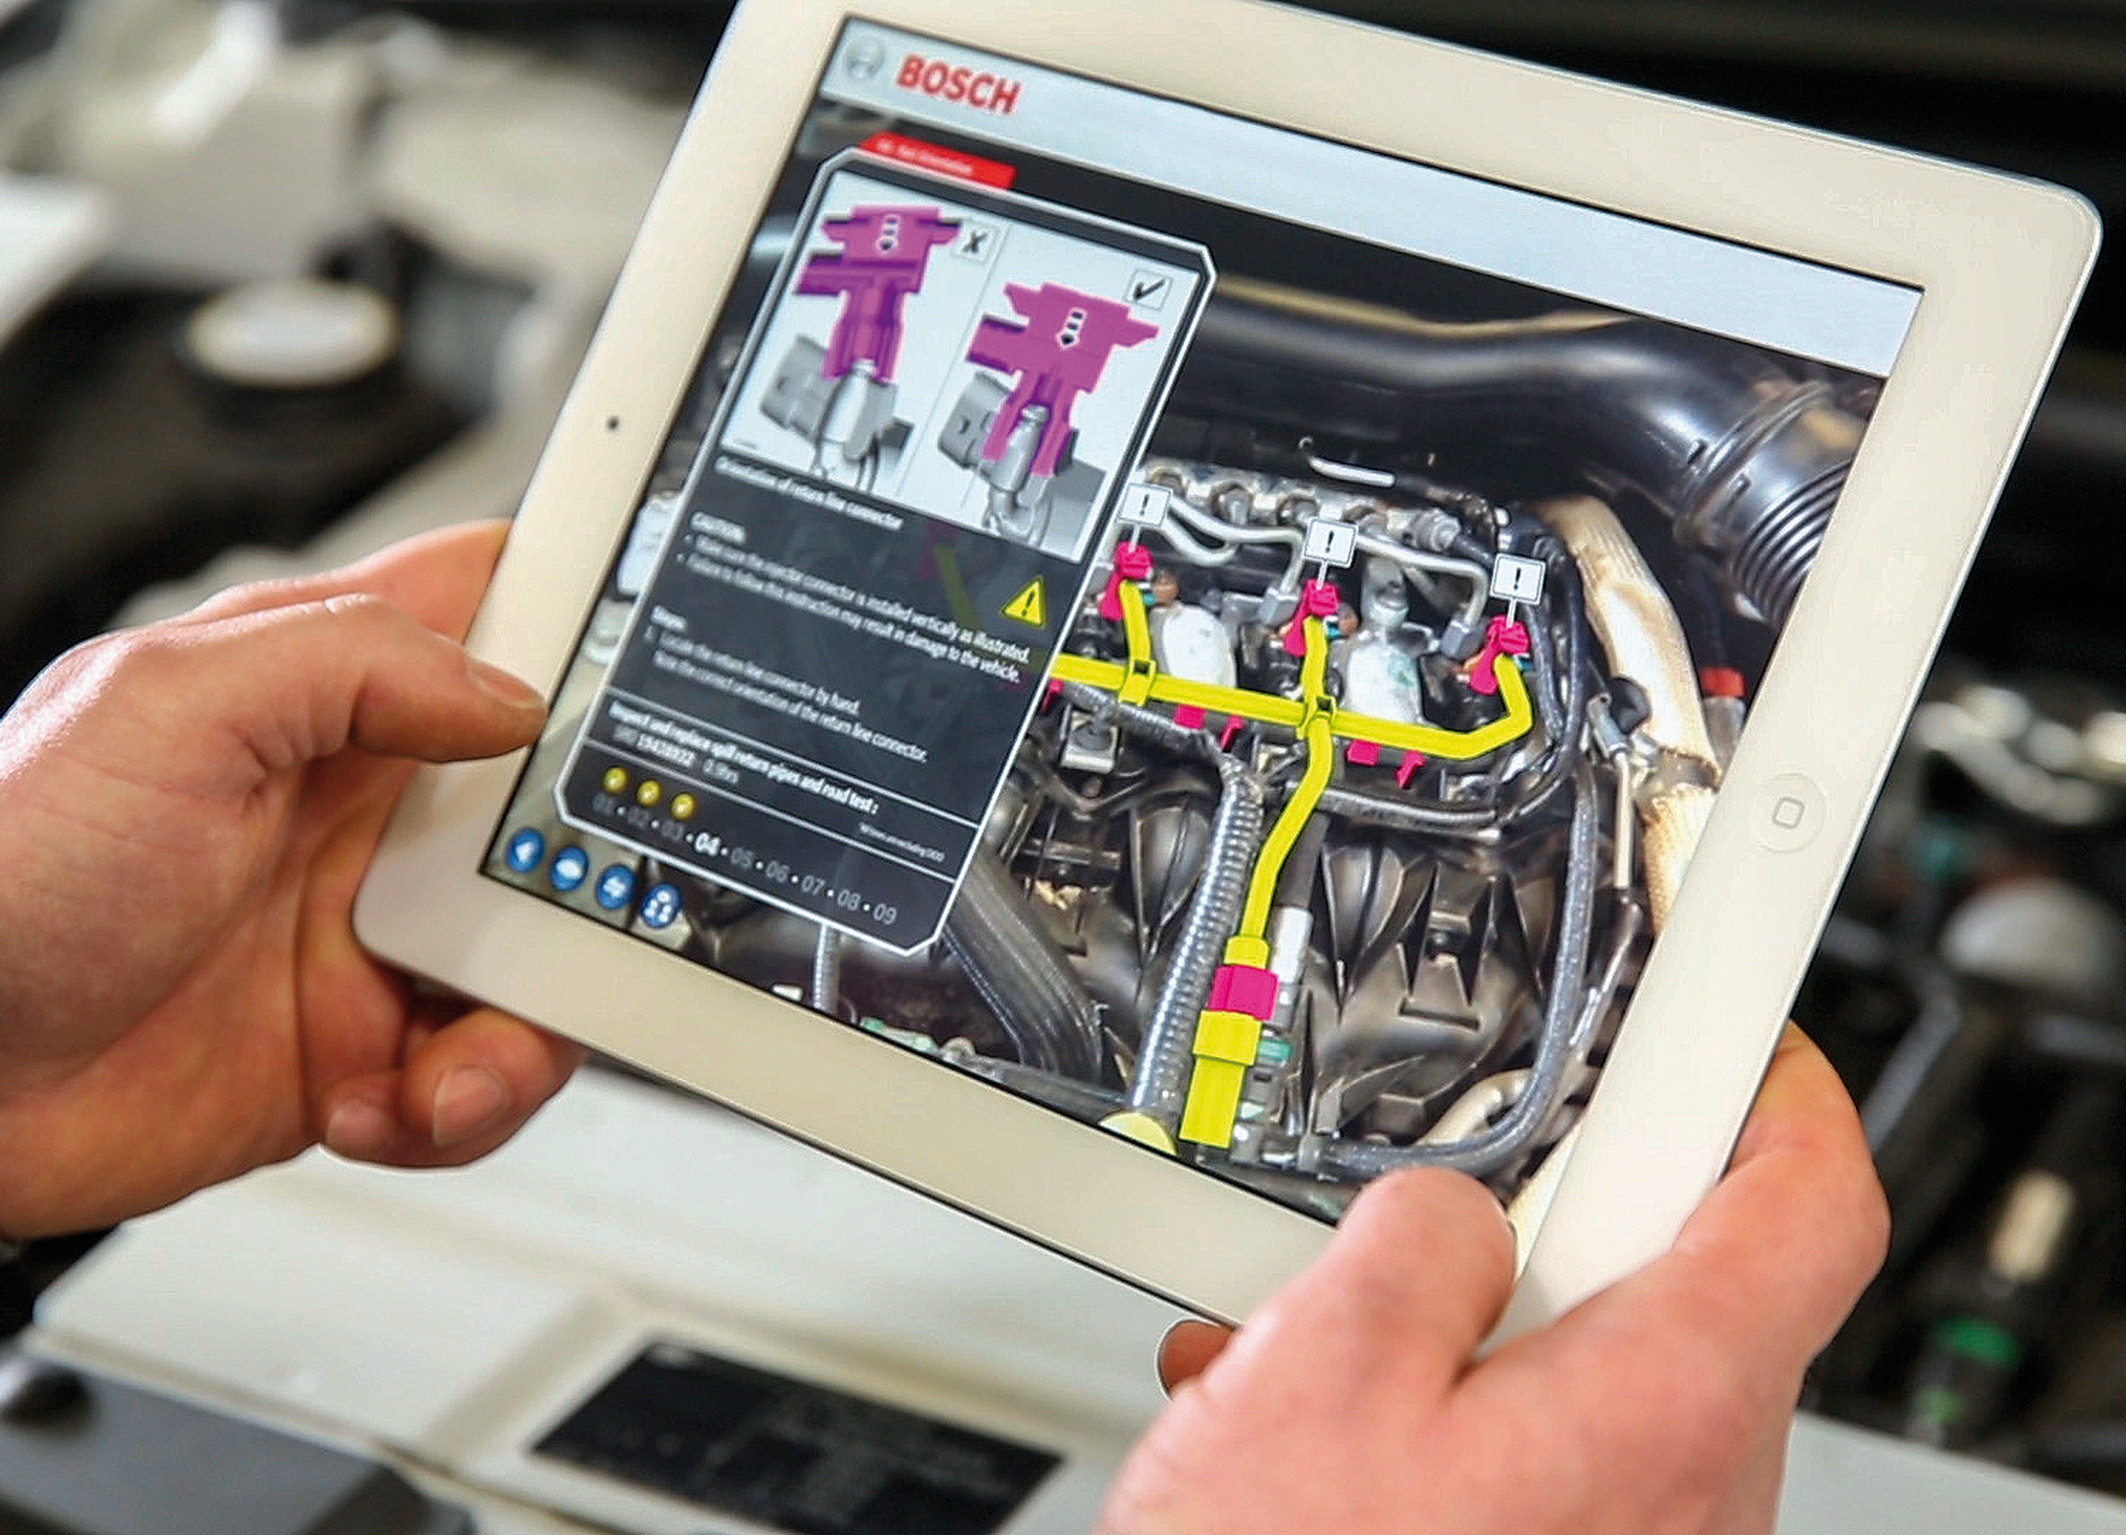 Diverse future Augmented Reality solutions for service, repair and training purposes